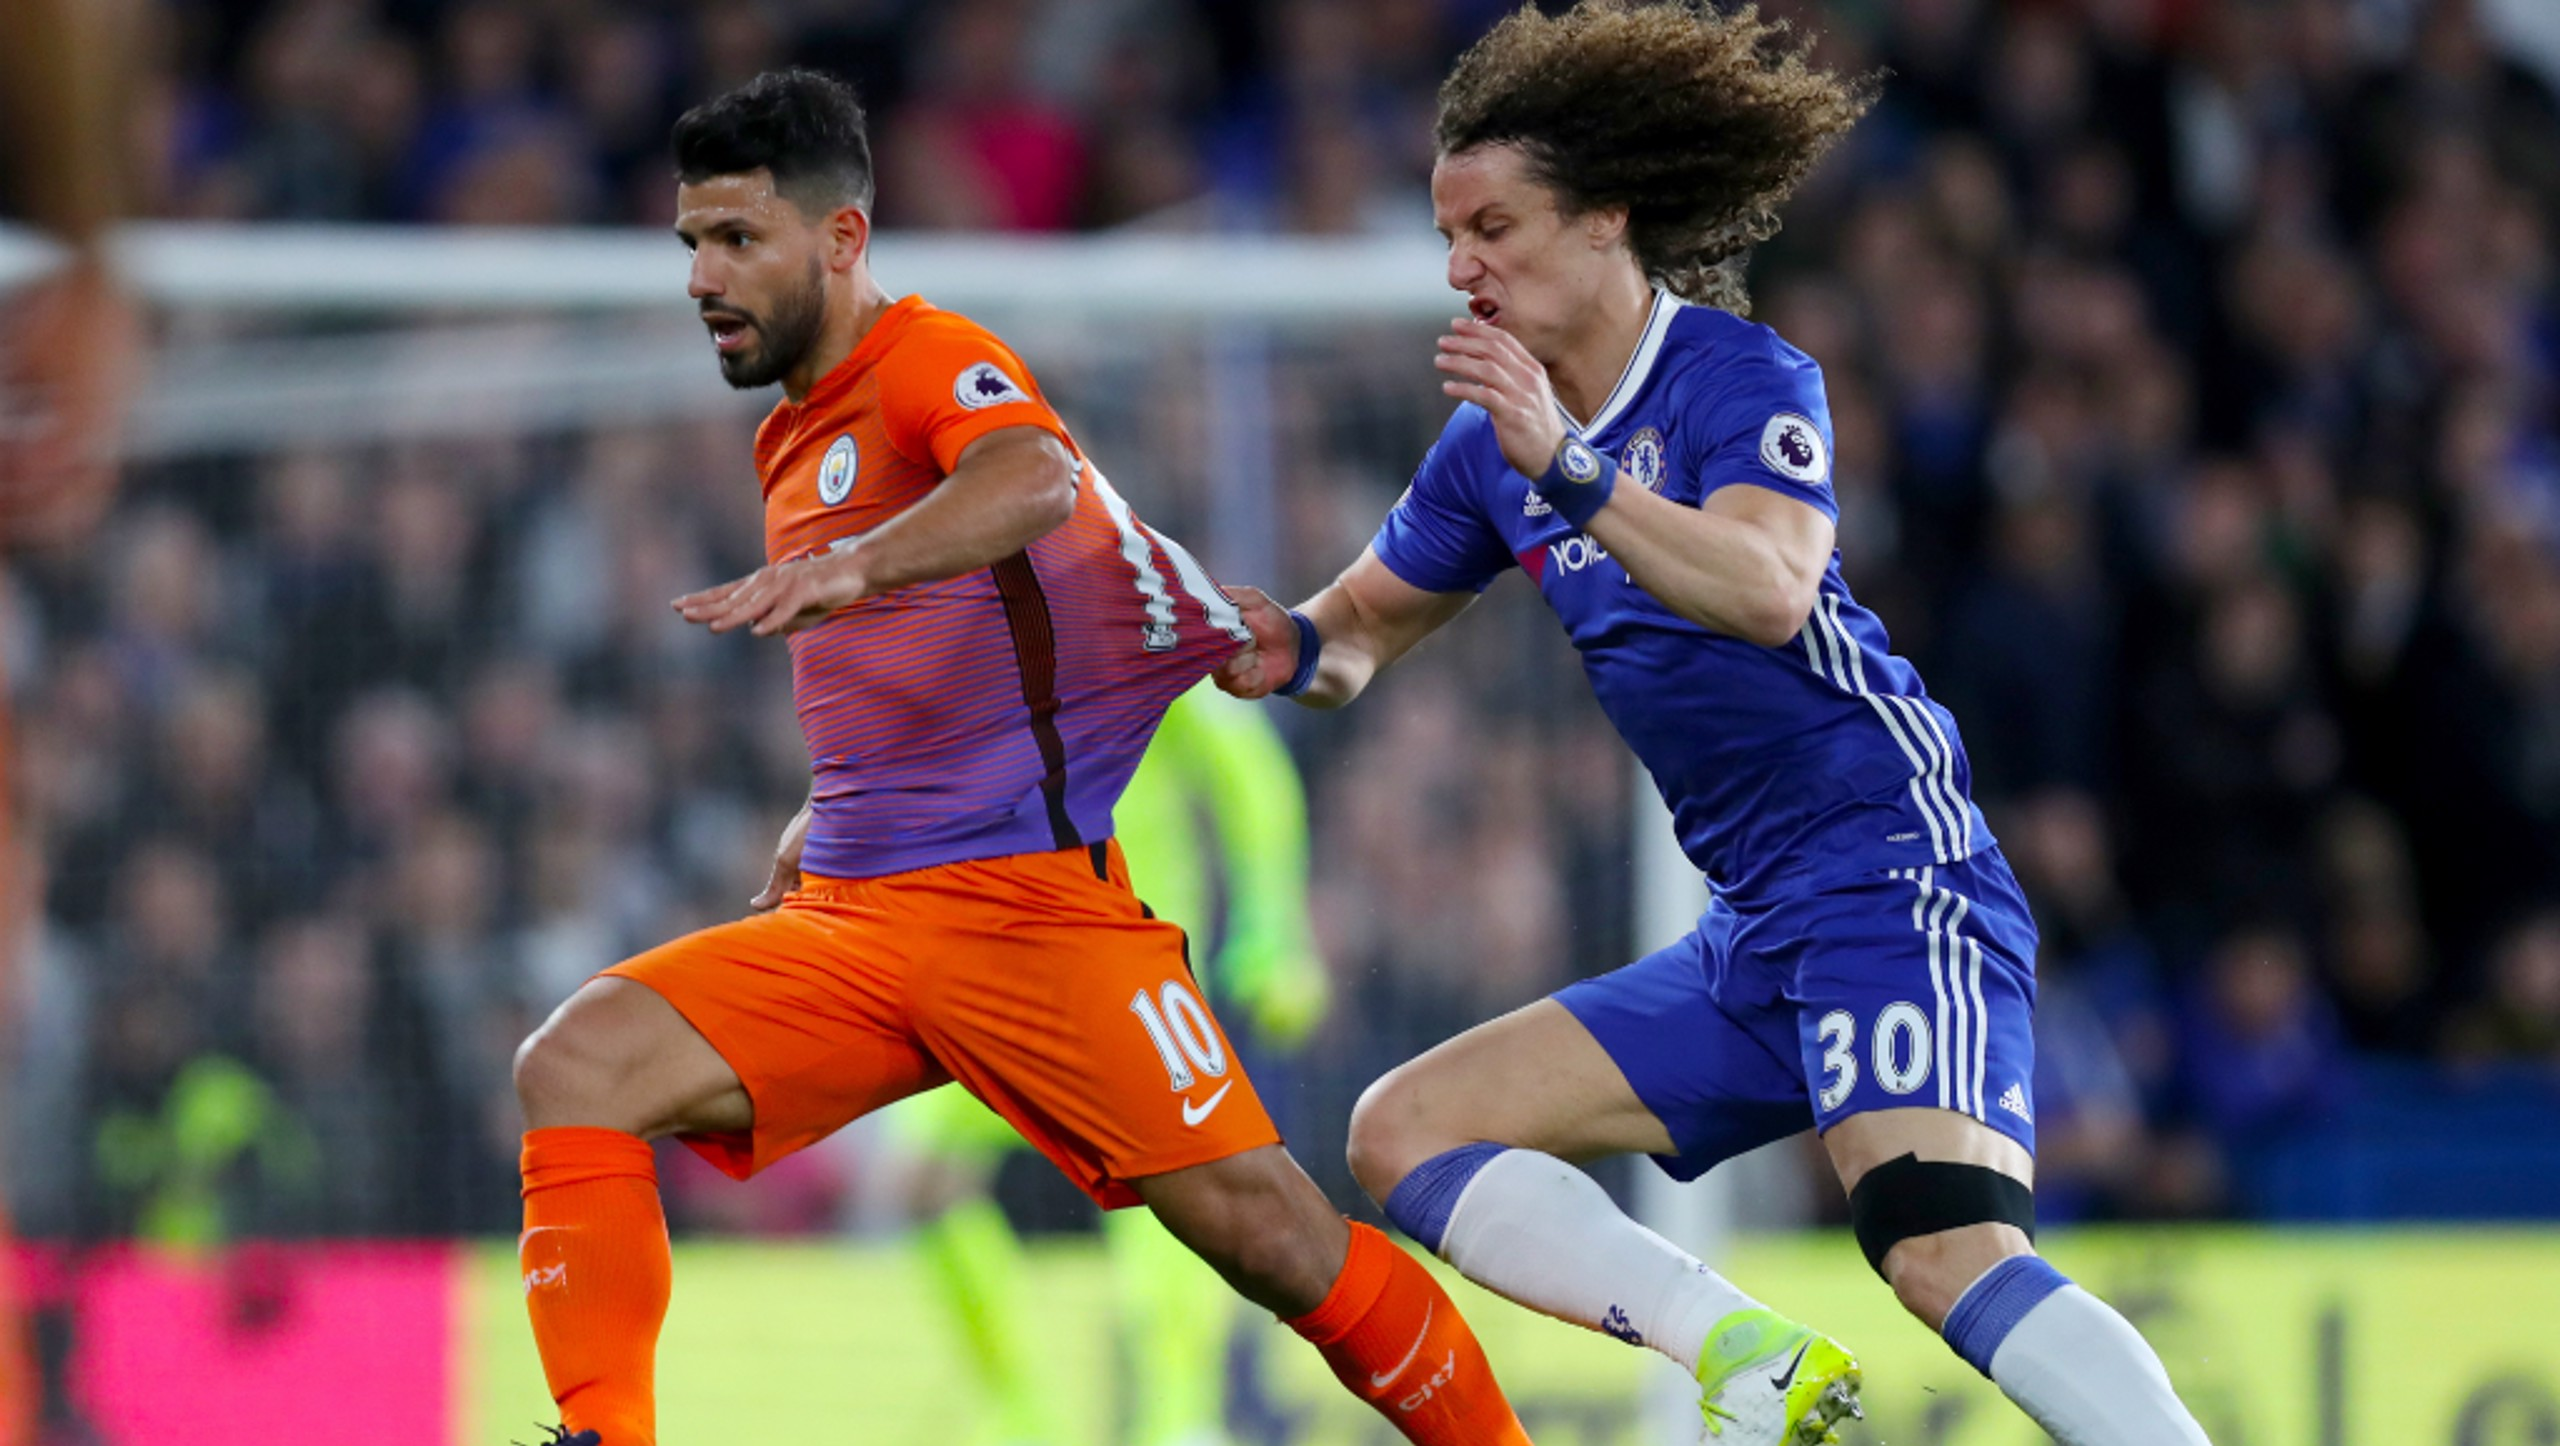 STOP AT ALL COSTS: David Luiz doing everything he can to halt Aguero